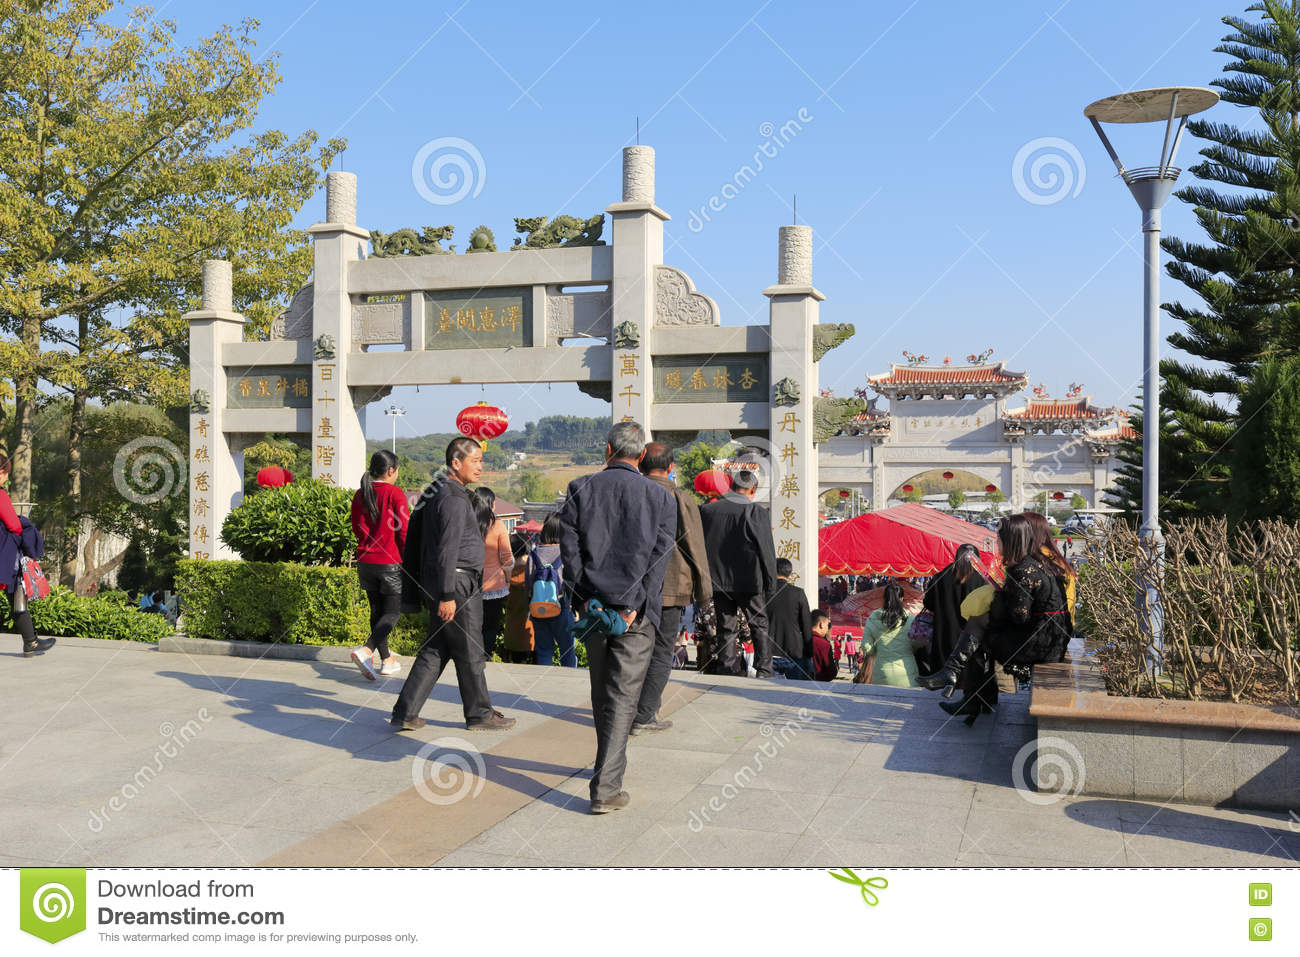 Chinese people visit chi gong